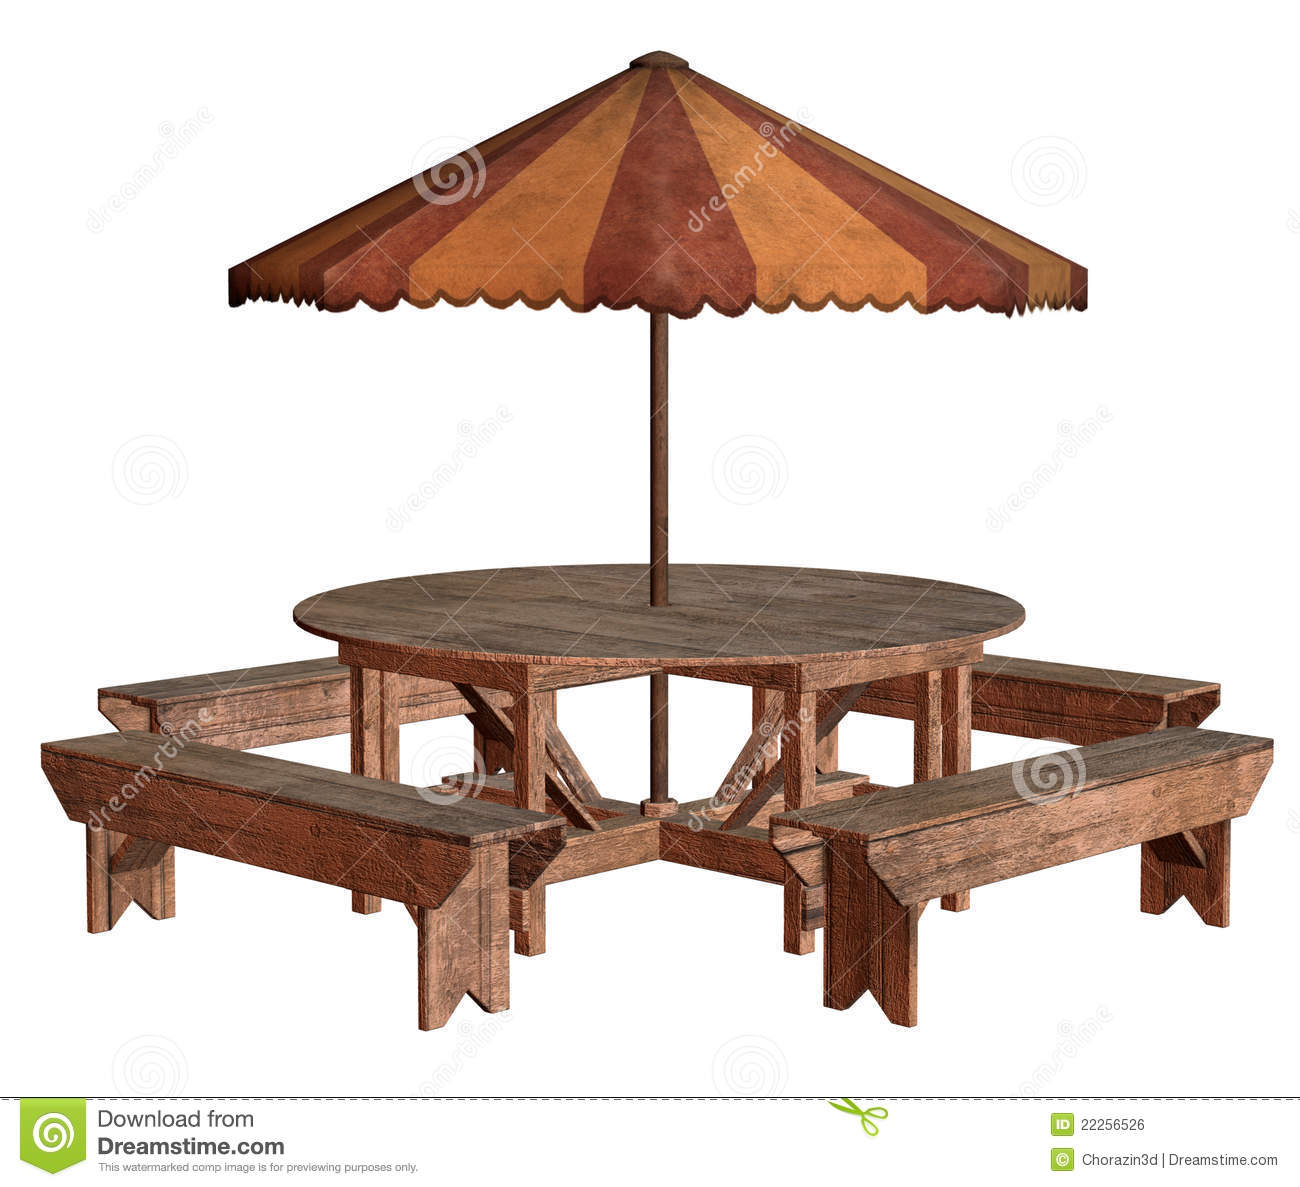 Picnic Table Royalty Free Stock Image   Image  22256526